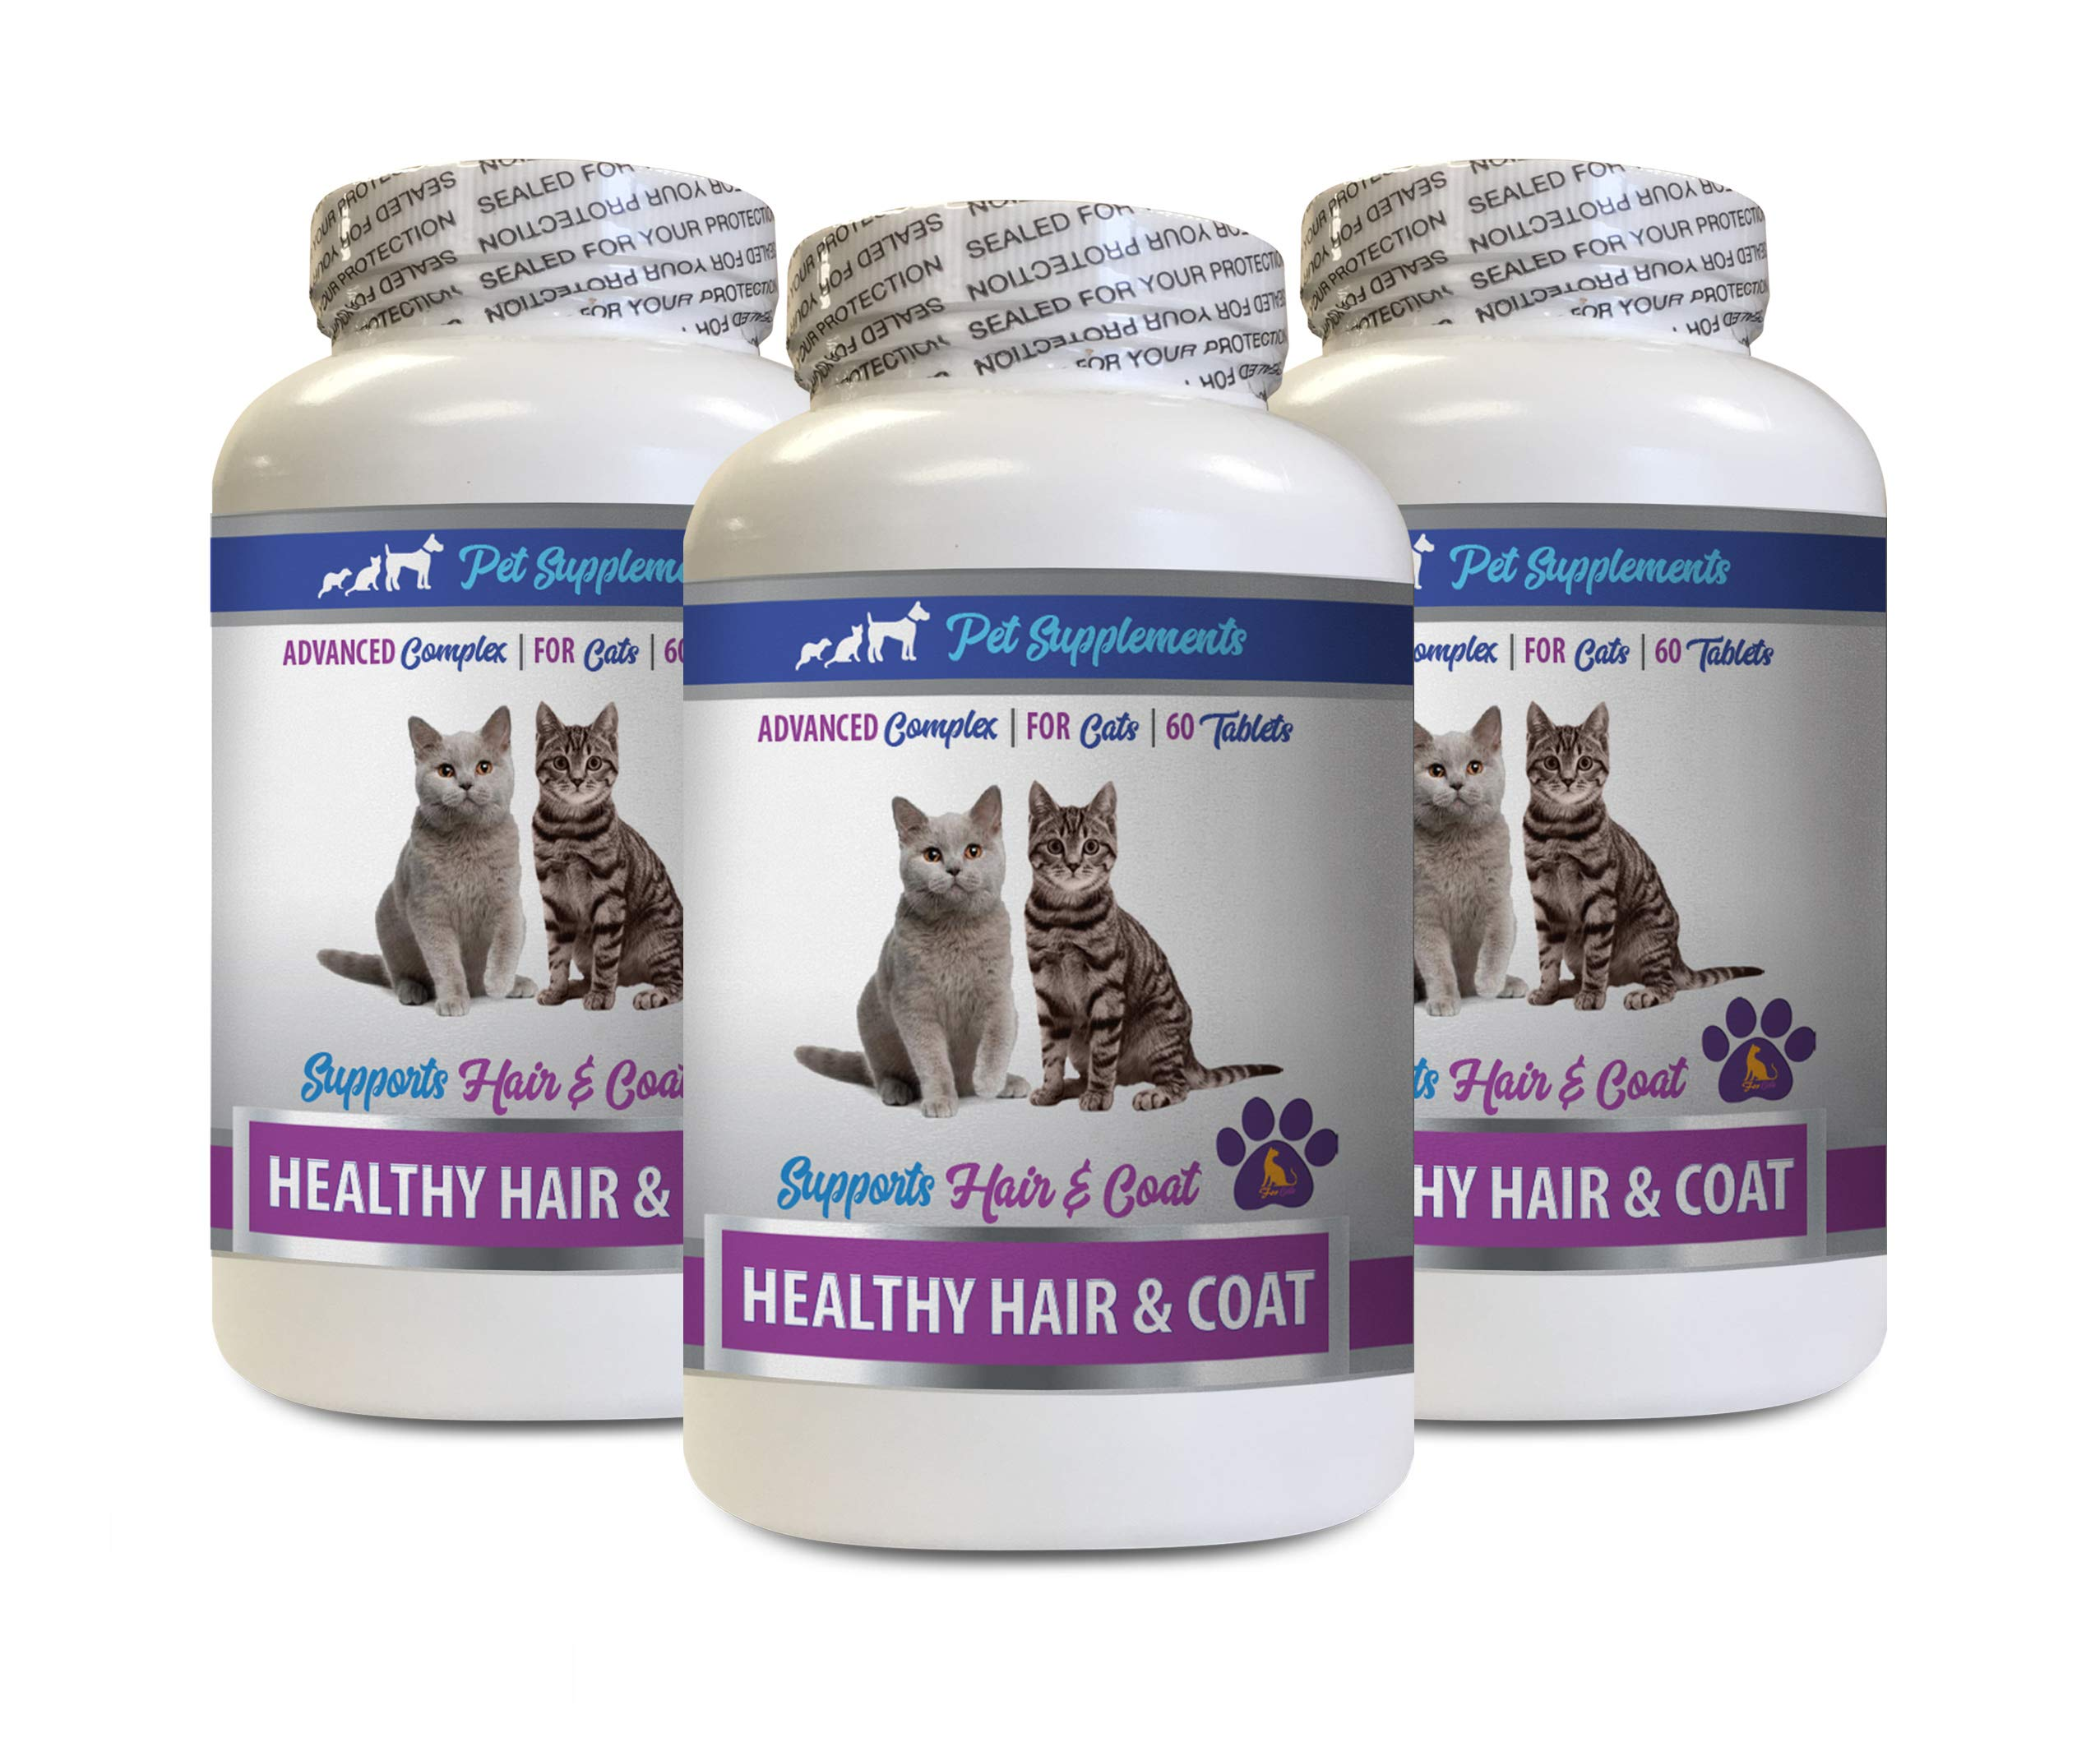 cat Vitamins Treats - Best Healthy Hair and Coat Supplement for Cats - Advanced Complex - Nail Health - cat Skin Treats - 3 Bottles (180 Tablets) by PET SUPPLEMENTS